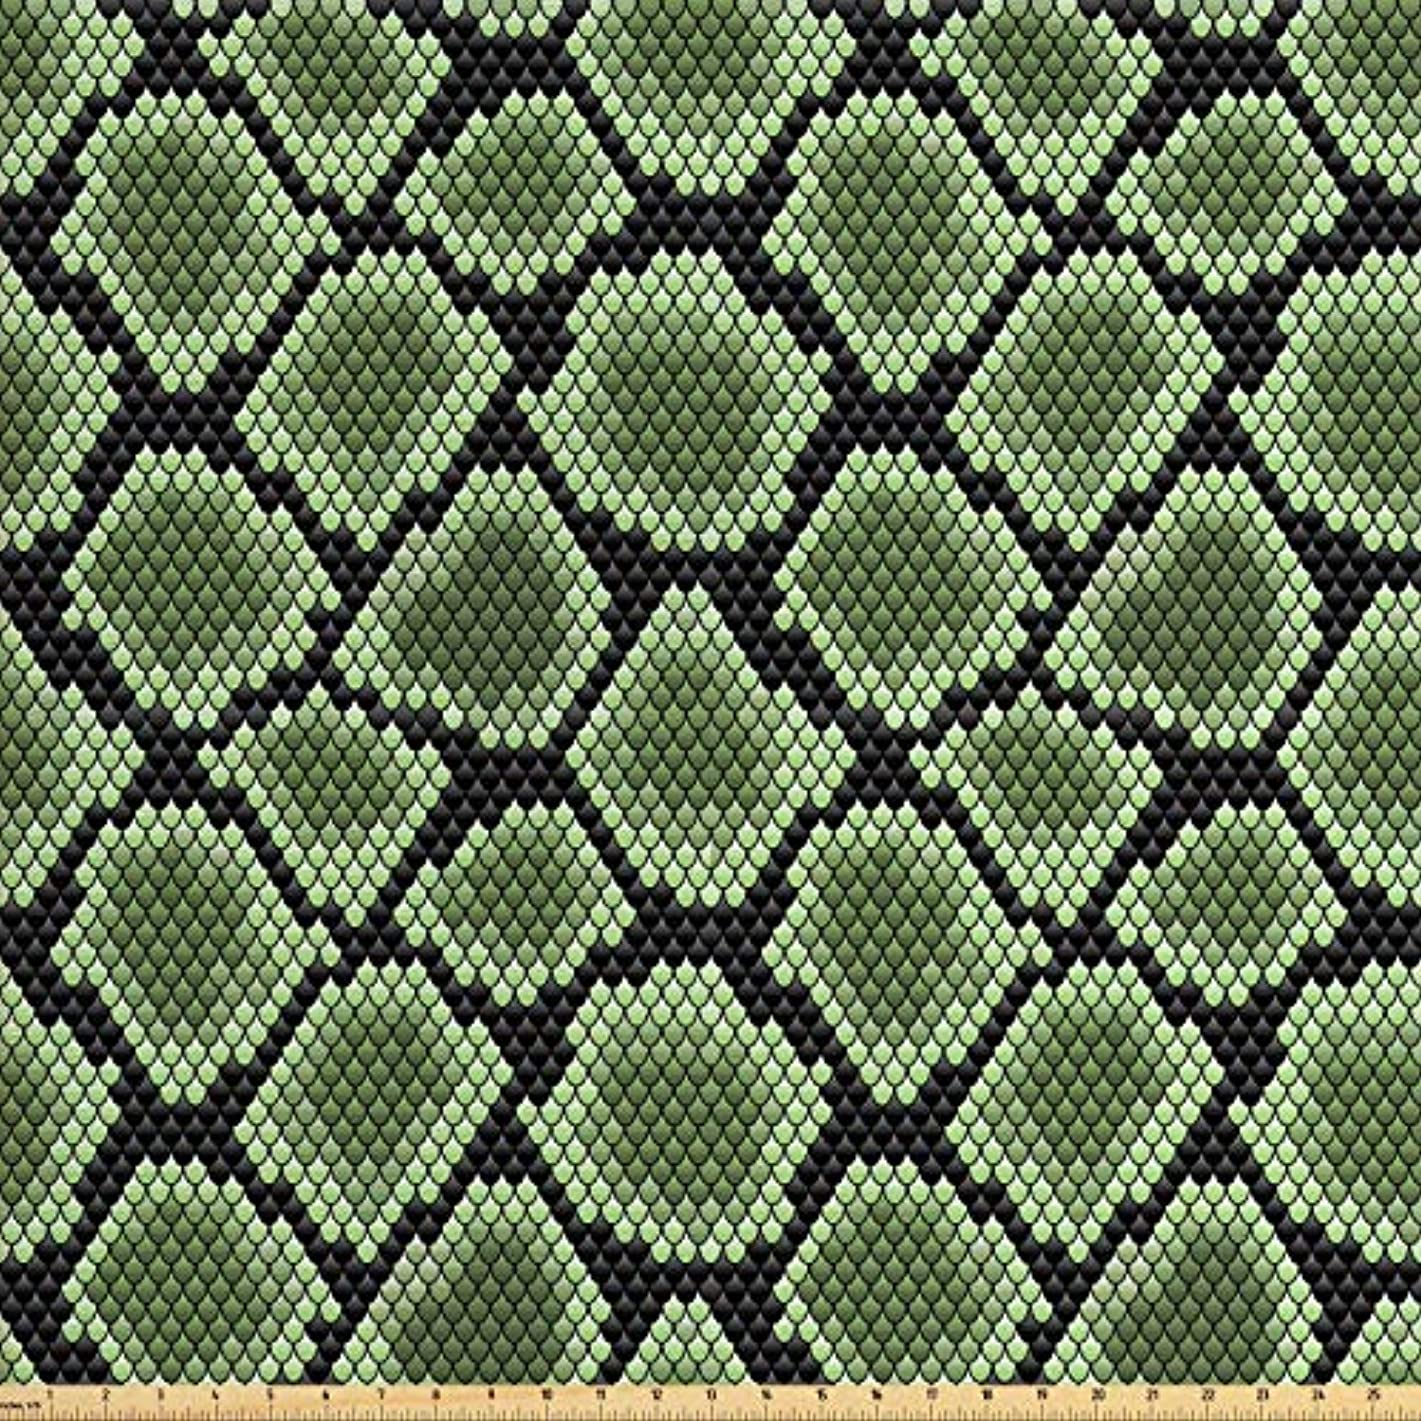 Lunarable Reptile Fabric by The Yard, Scale Pattern Abstract Nature Influences Skin Design Half Circles Illustration, Decorative Fabric for Upholstery and Home Accents, 2 Yards, Black Green